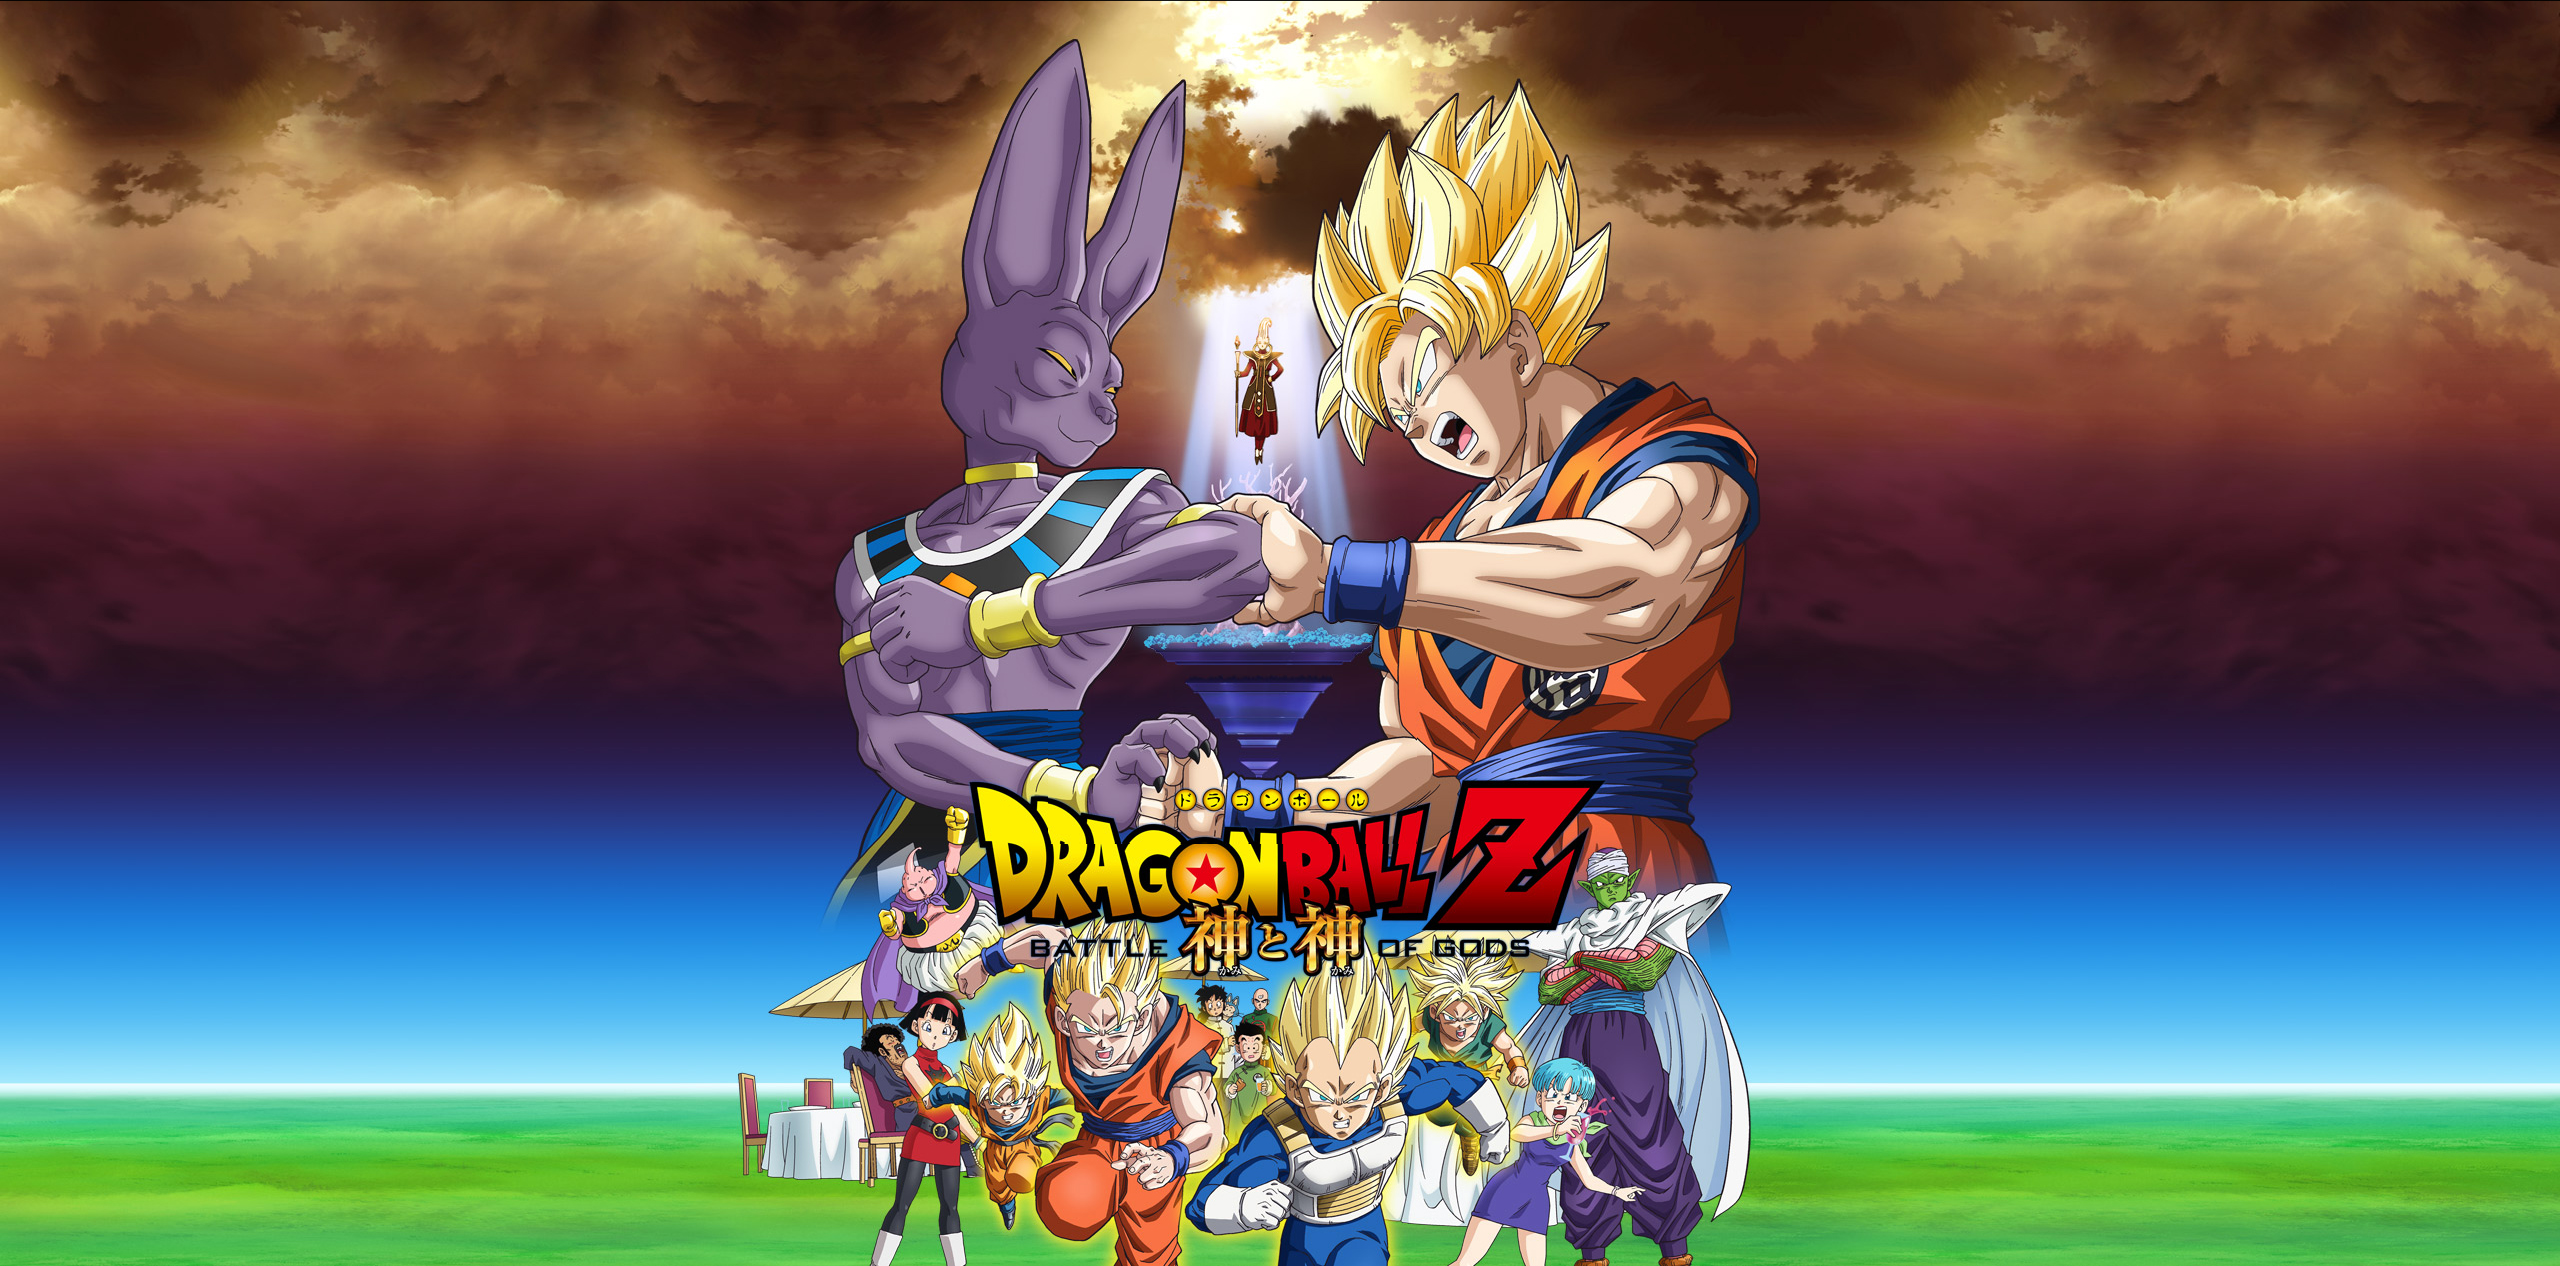 47 Dragon Ball Z Live Wallpapers On Wallpapersafari